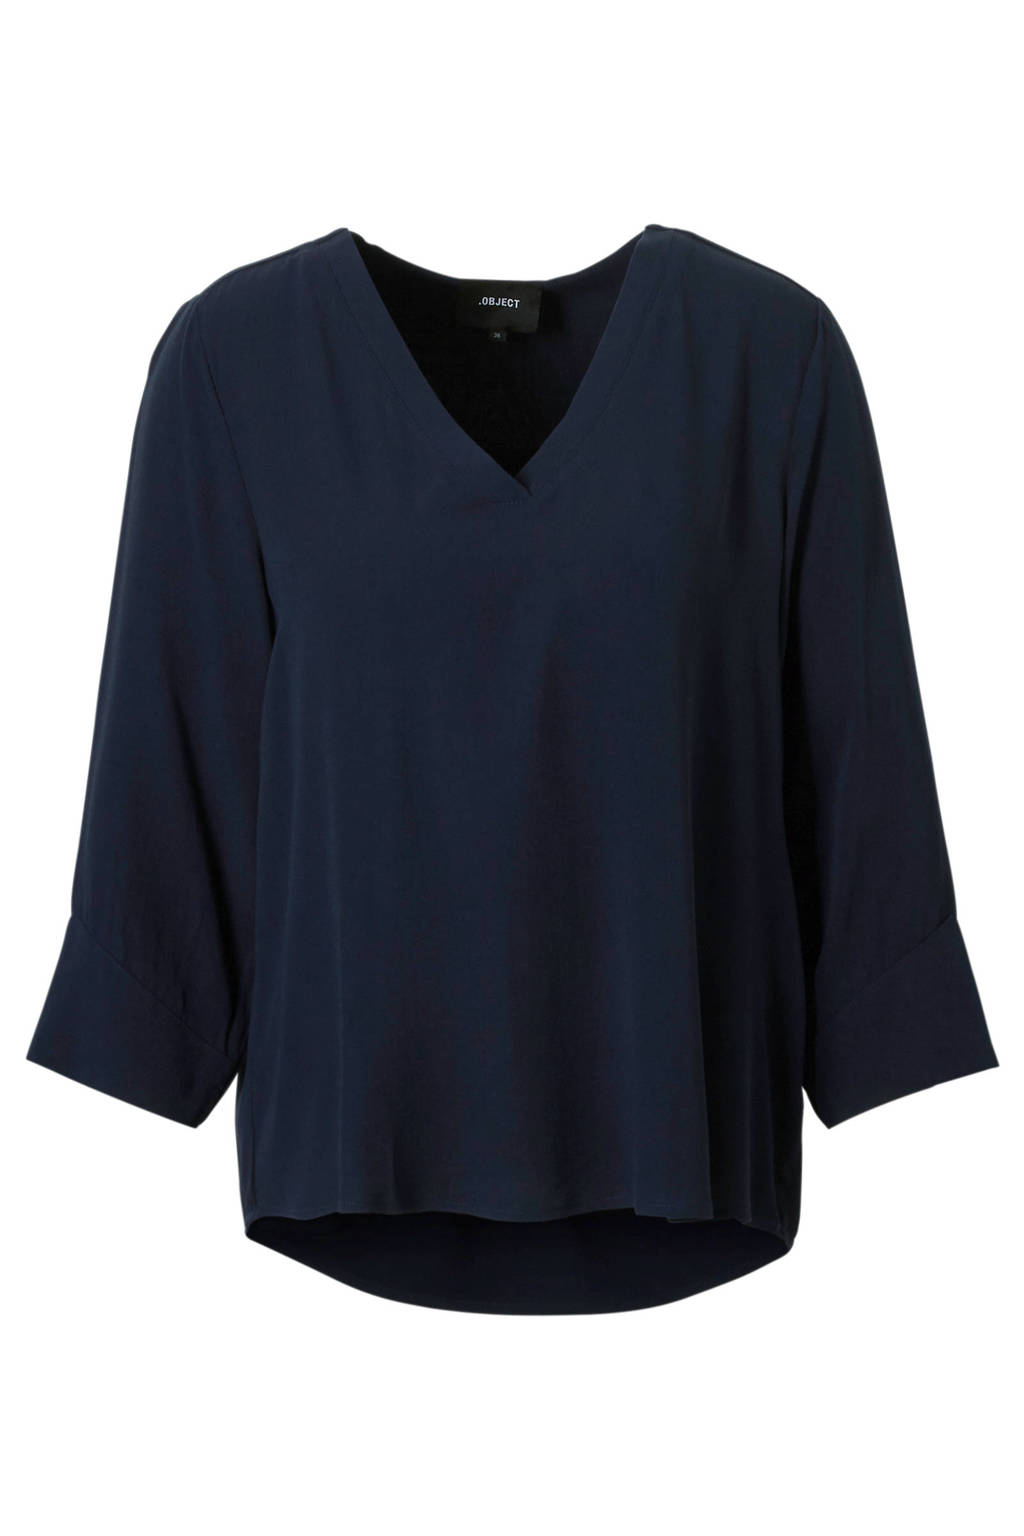 OBJECT basic top donkerblauw, Donkerblauw